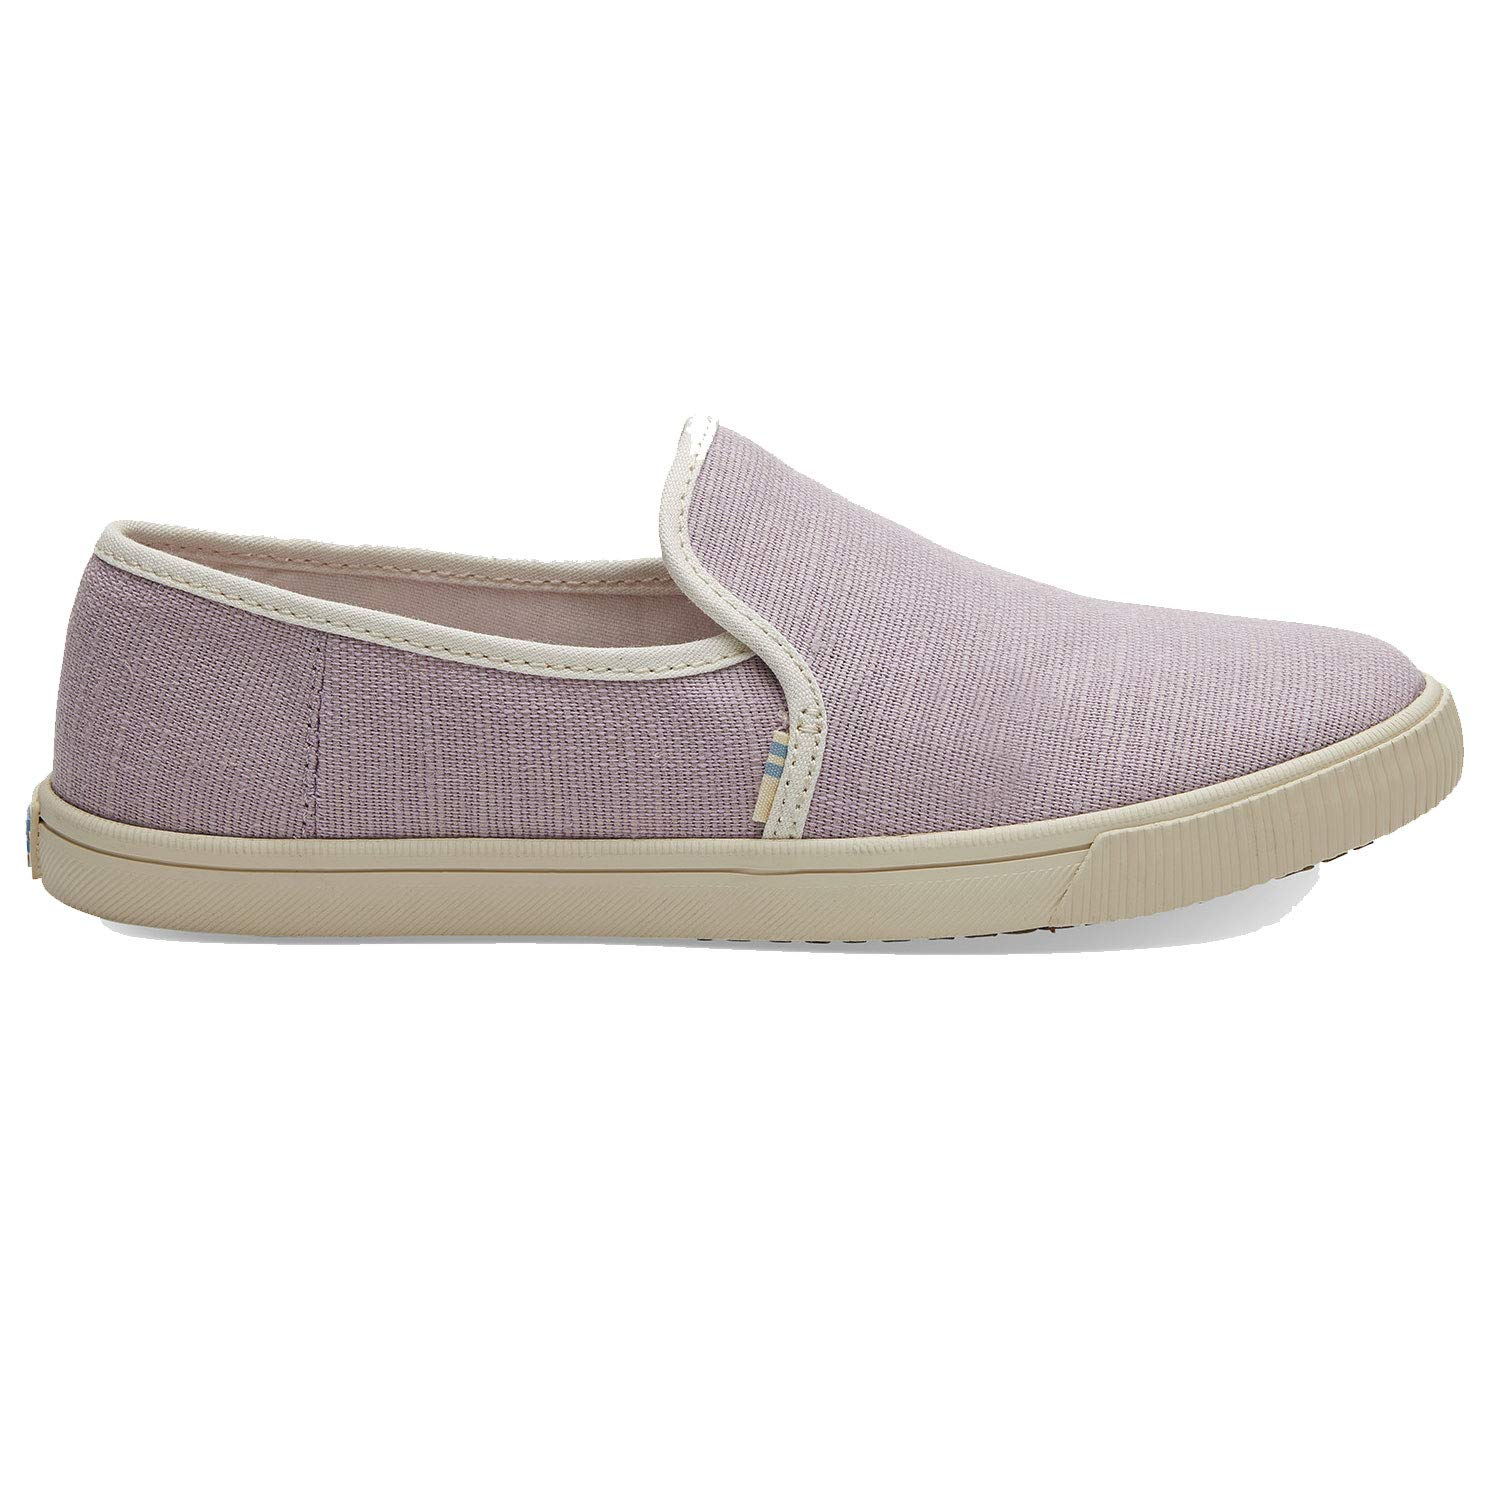 ef3ce816f Galleon - TOMS Burnished Lilac Heritage Canvas Women's Clemente Slip-Ons  Topanga Collection 10013383 (Size: 6.5)